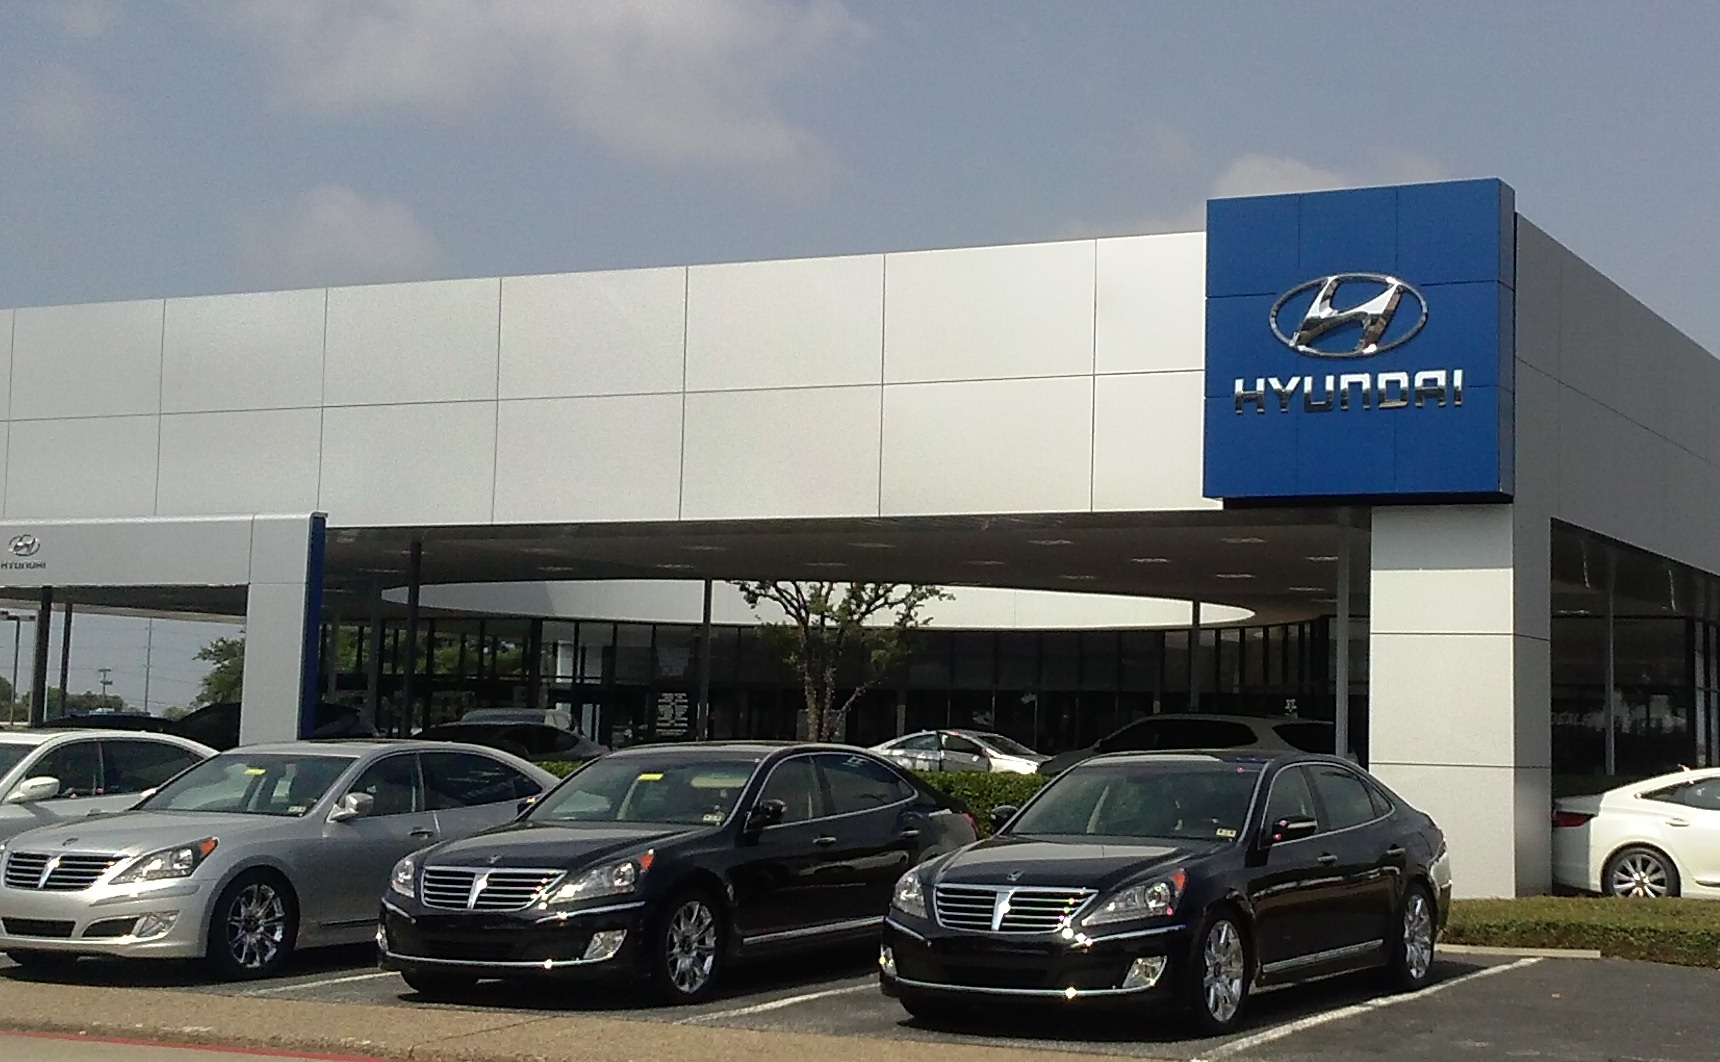 plano business automotive article an com empire planocourier huffines hyundai image starlocalmedia building in